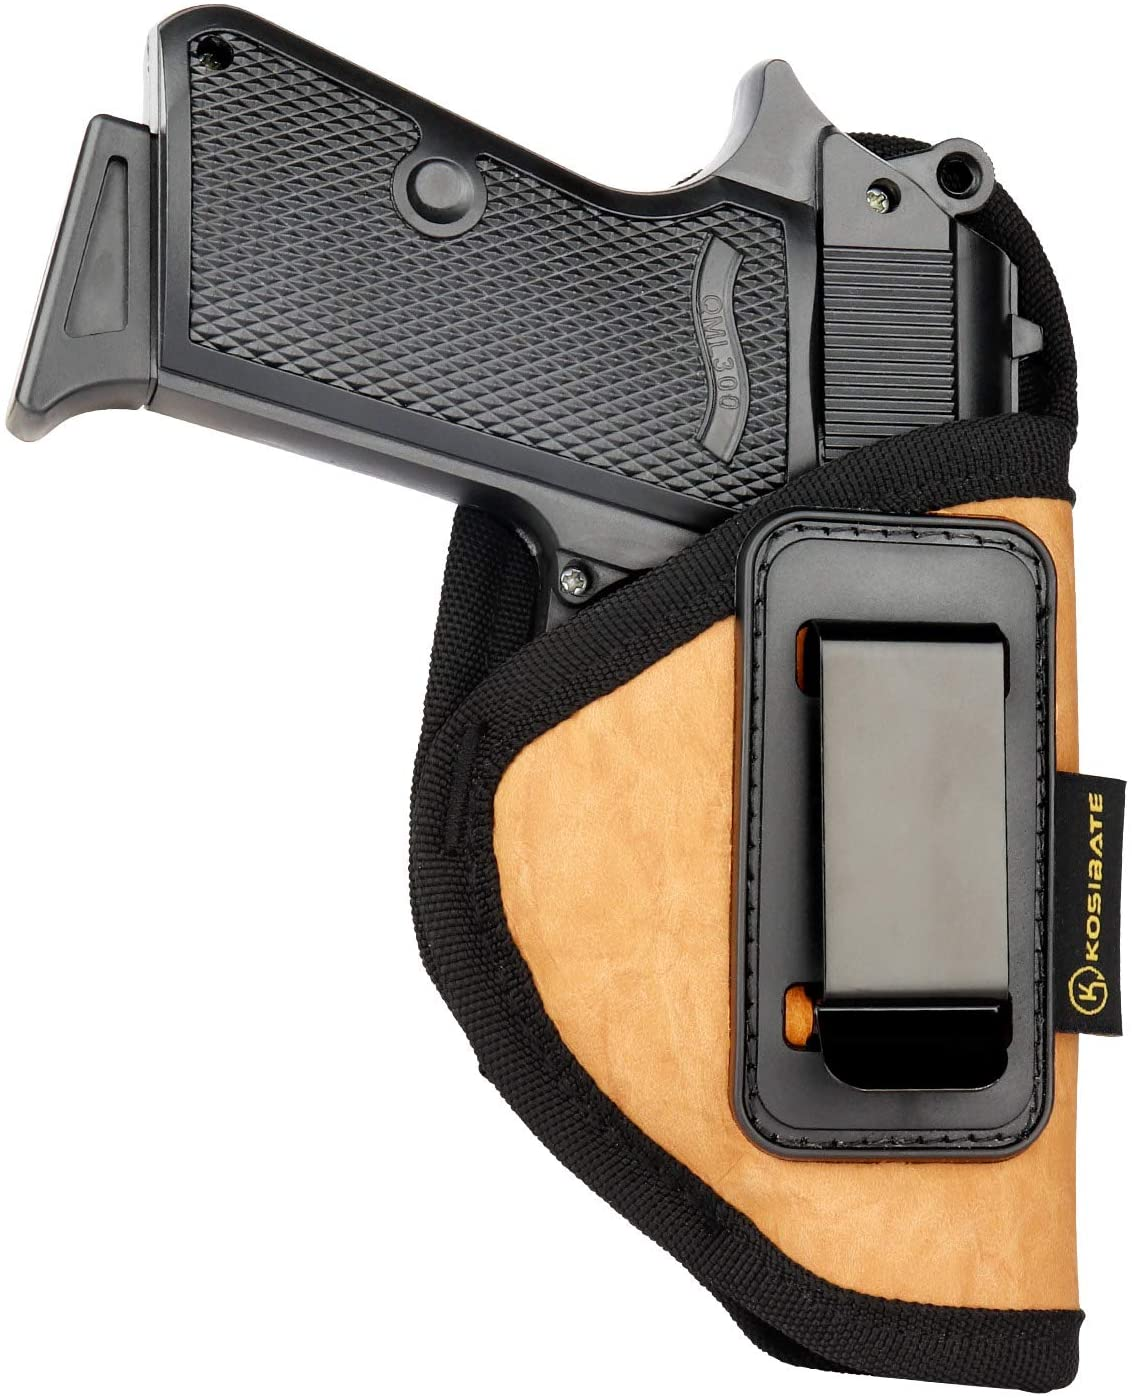 Kosibate S&W Bodyguard 380 Holster, IWB Holster PU Leather Concealed Carry Compatible with Ruger LCP II, Taurus TCP, Sig P238, Jimenez JA, PPK .380